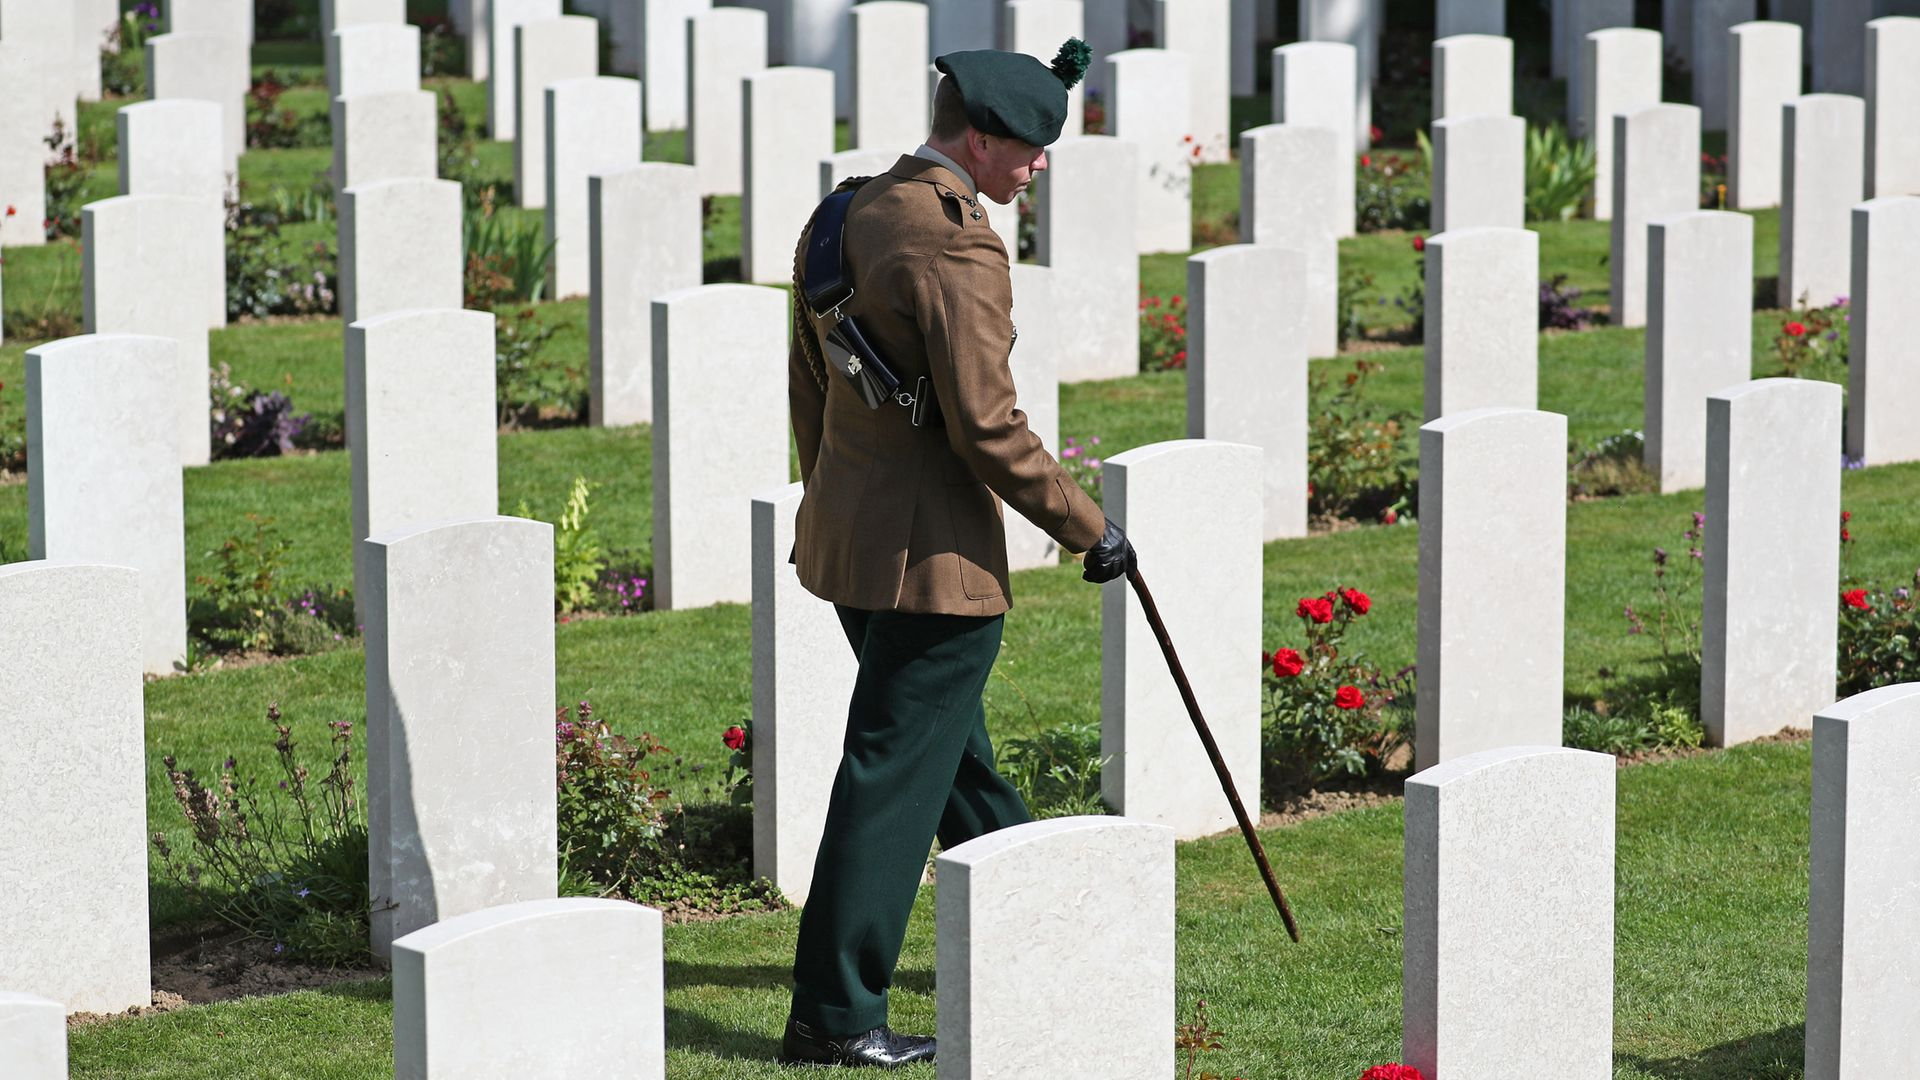 A man in uniform walks past the graves of fallen soldiers during the Royal British Legion's Service of Remembrance, at the Commonwealth War Graves Commission Cemetery, in Bayeux, France, as part of commemorations for the 75th anniversary of the D-Day landings. - Credit: PA